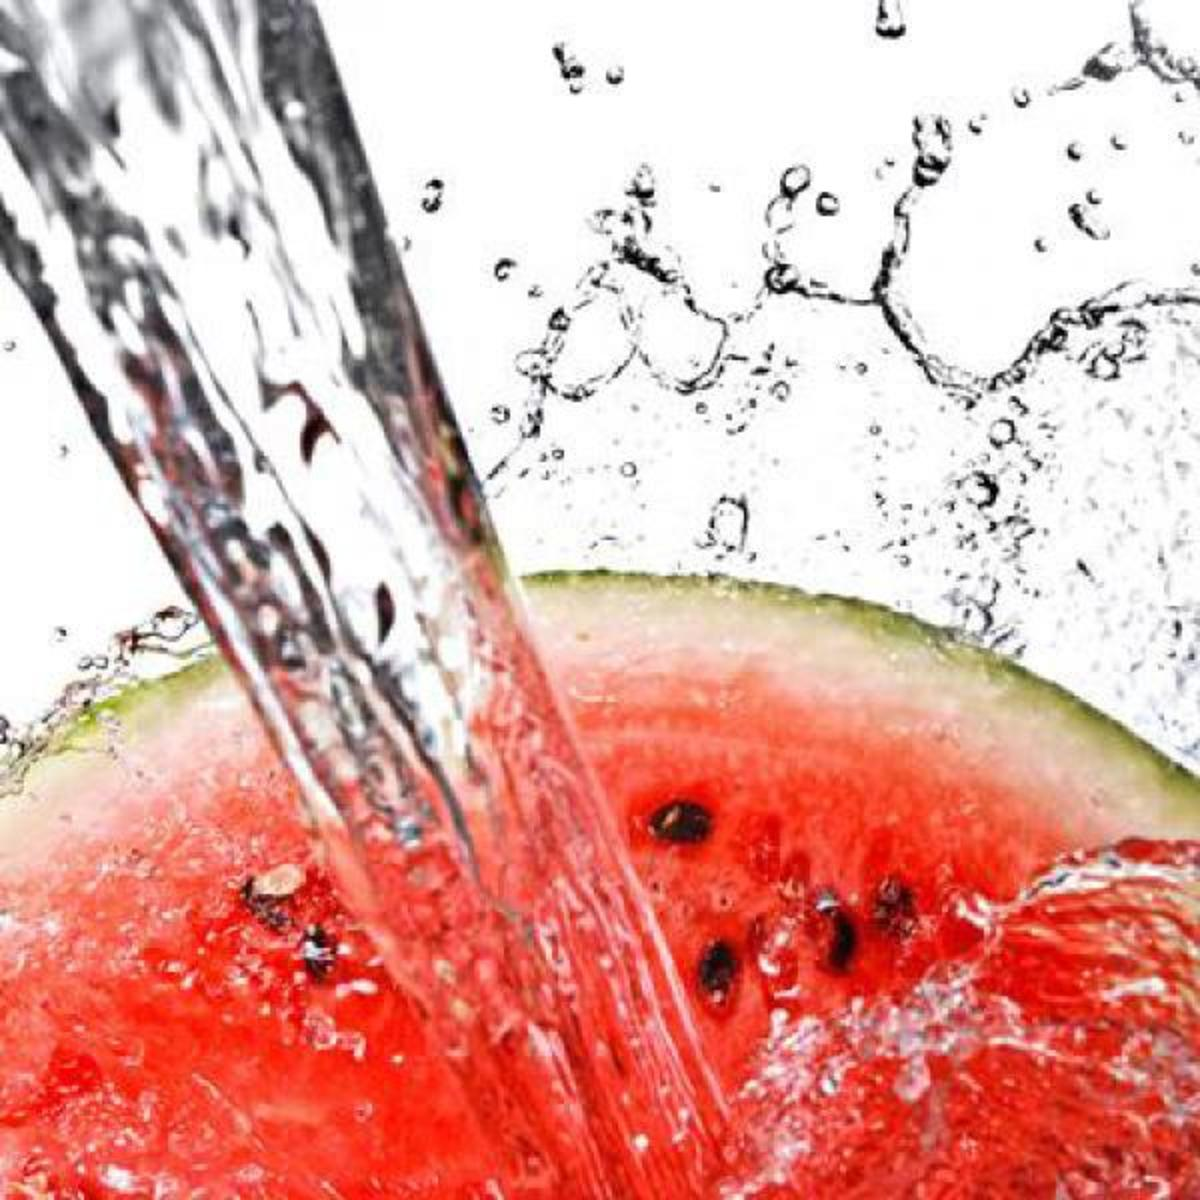 energy-foods-to-fight-fatigue-the-superb-benefits-of-cinnamon-honey-green-tea-tomatoes-and-watermelon